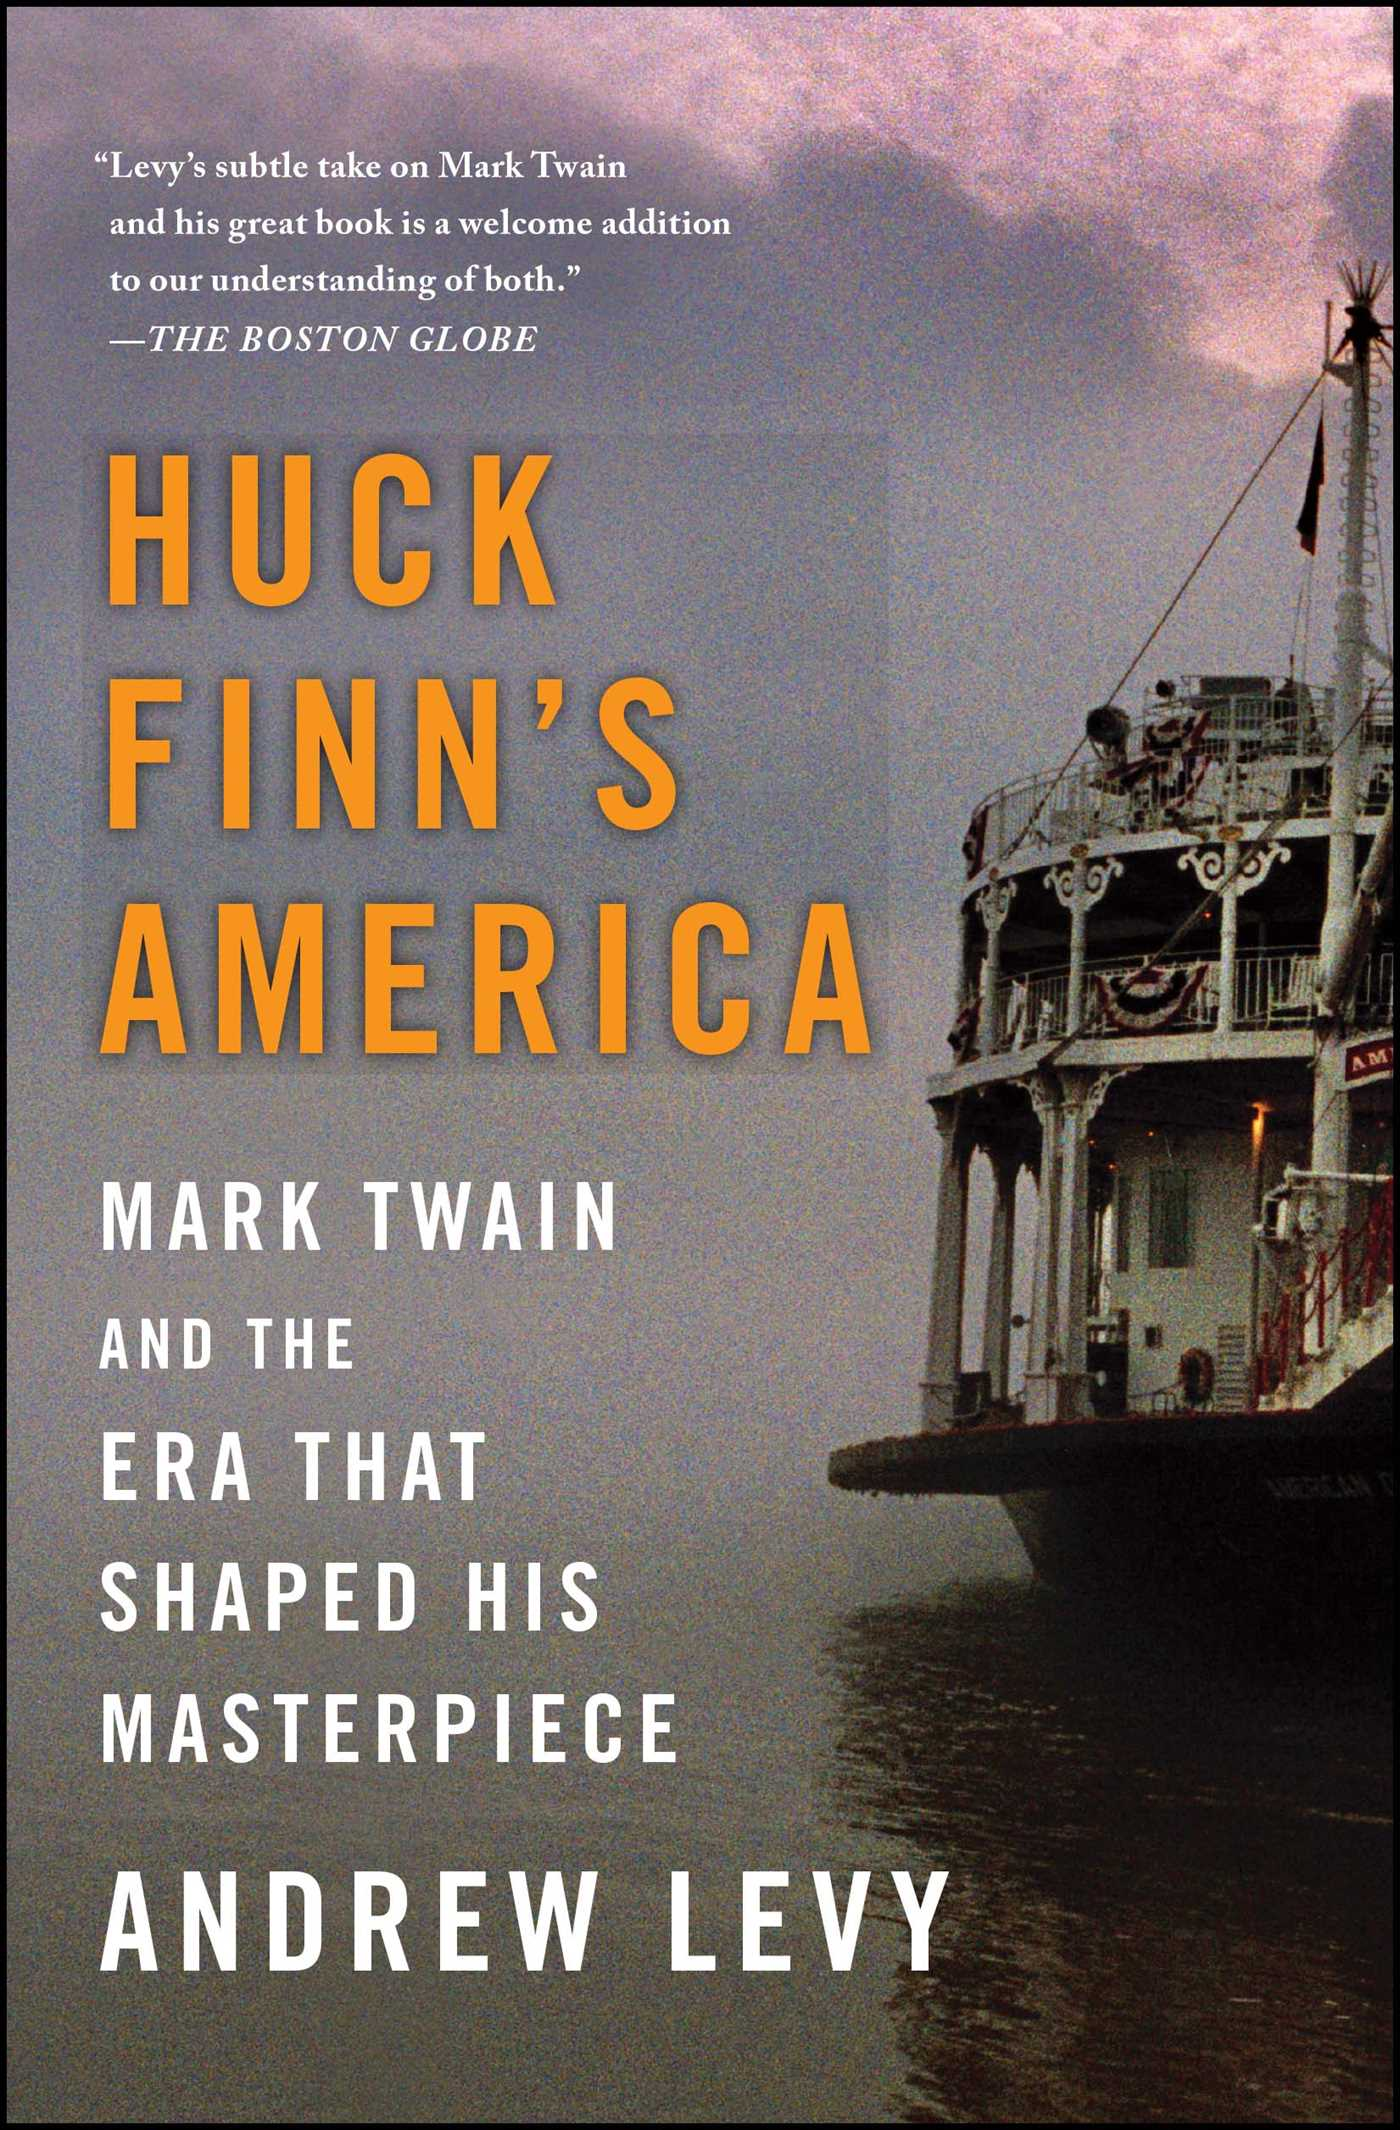 huck finn s america book by andrew levy official publisher  huck finn s america book by andrew levy official publisher page simon schuster